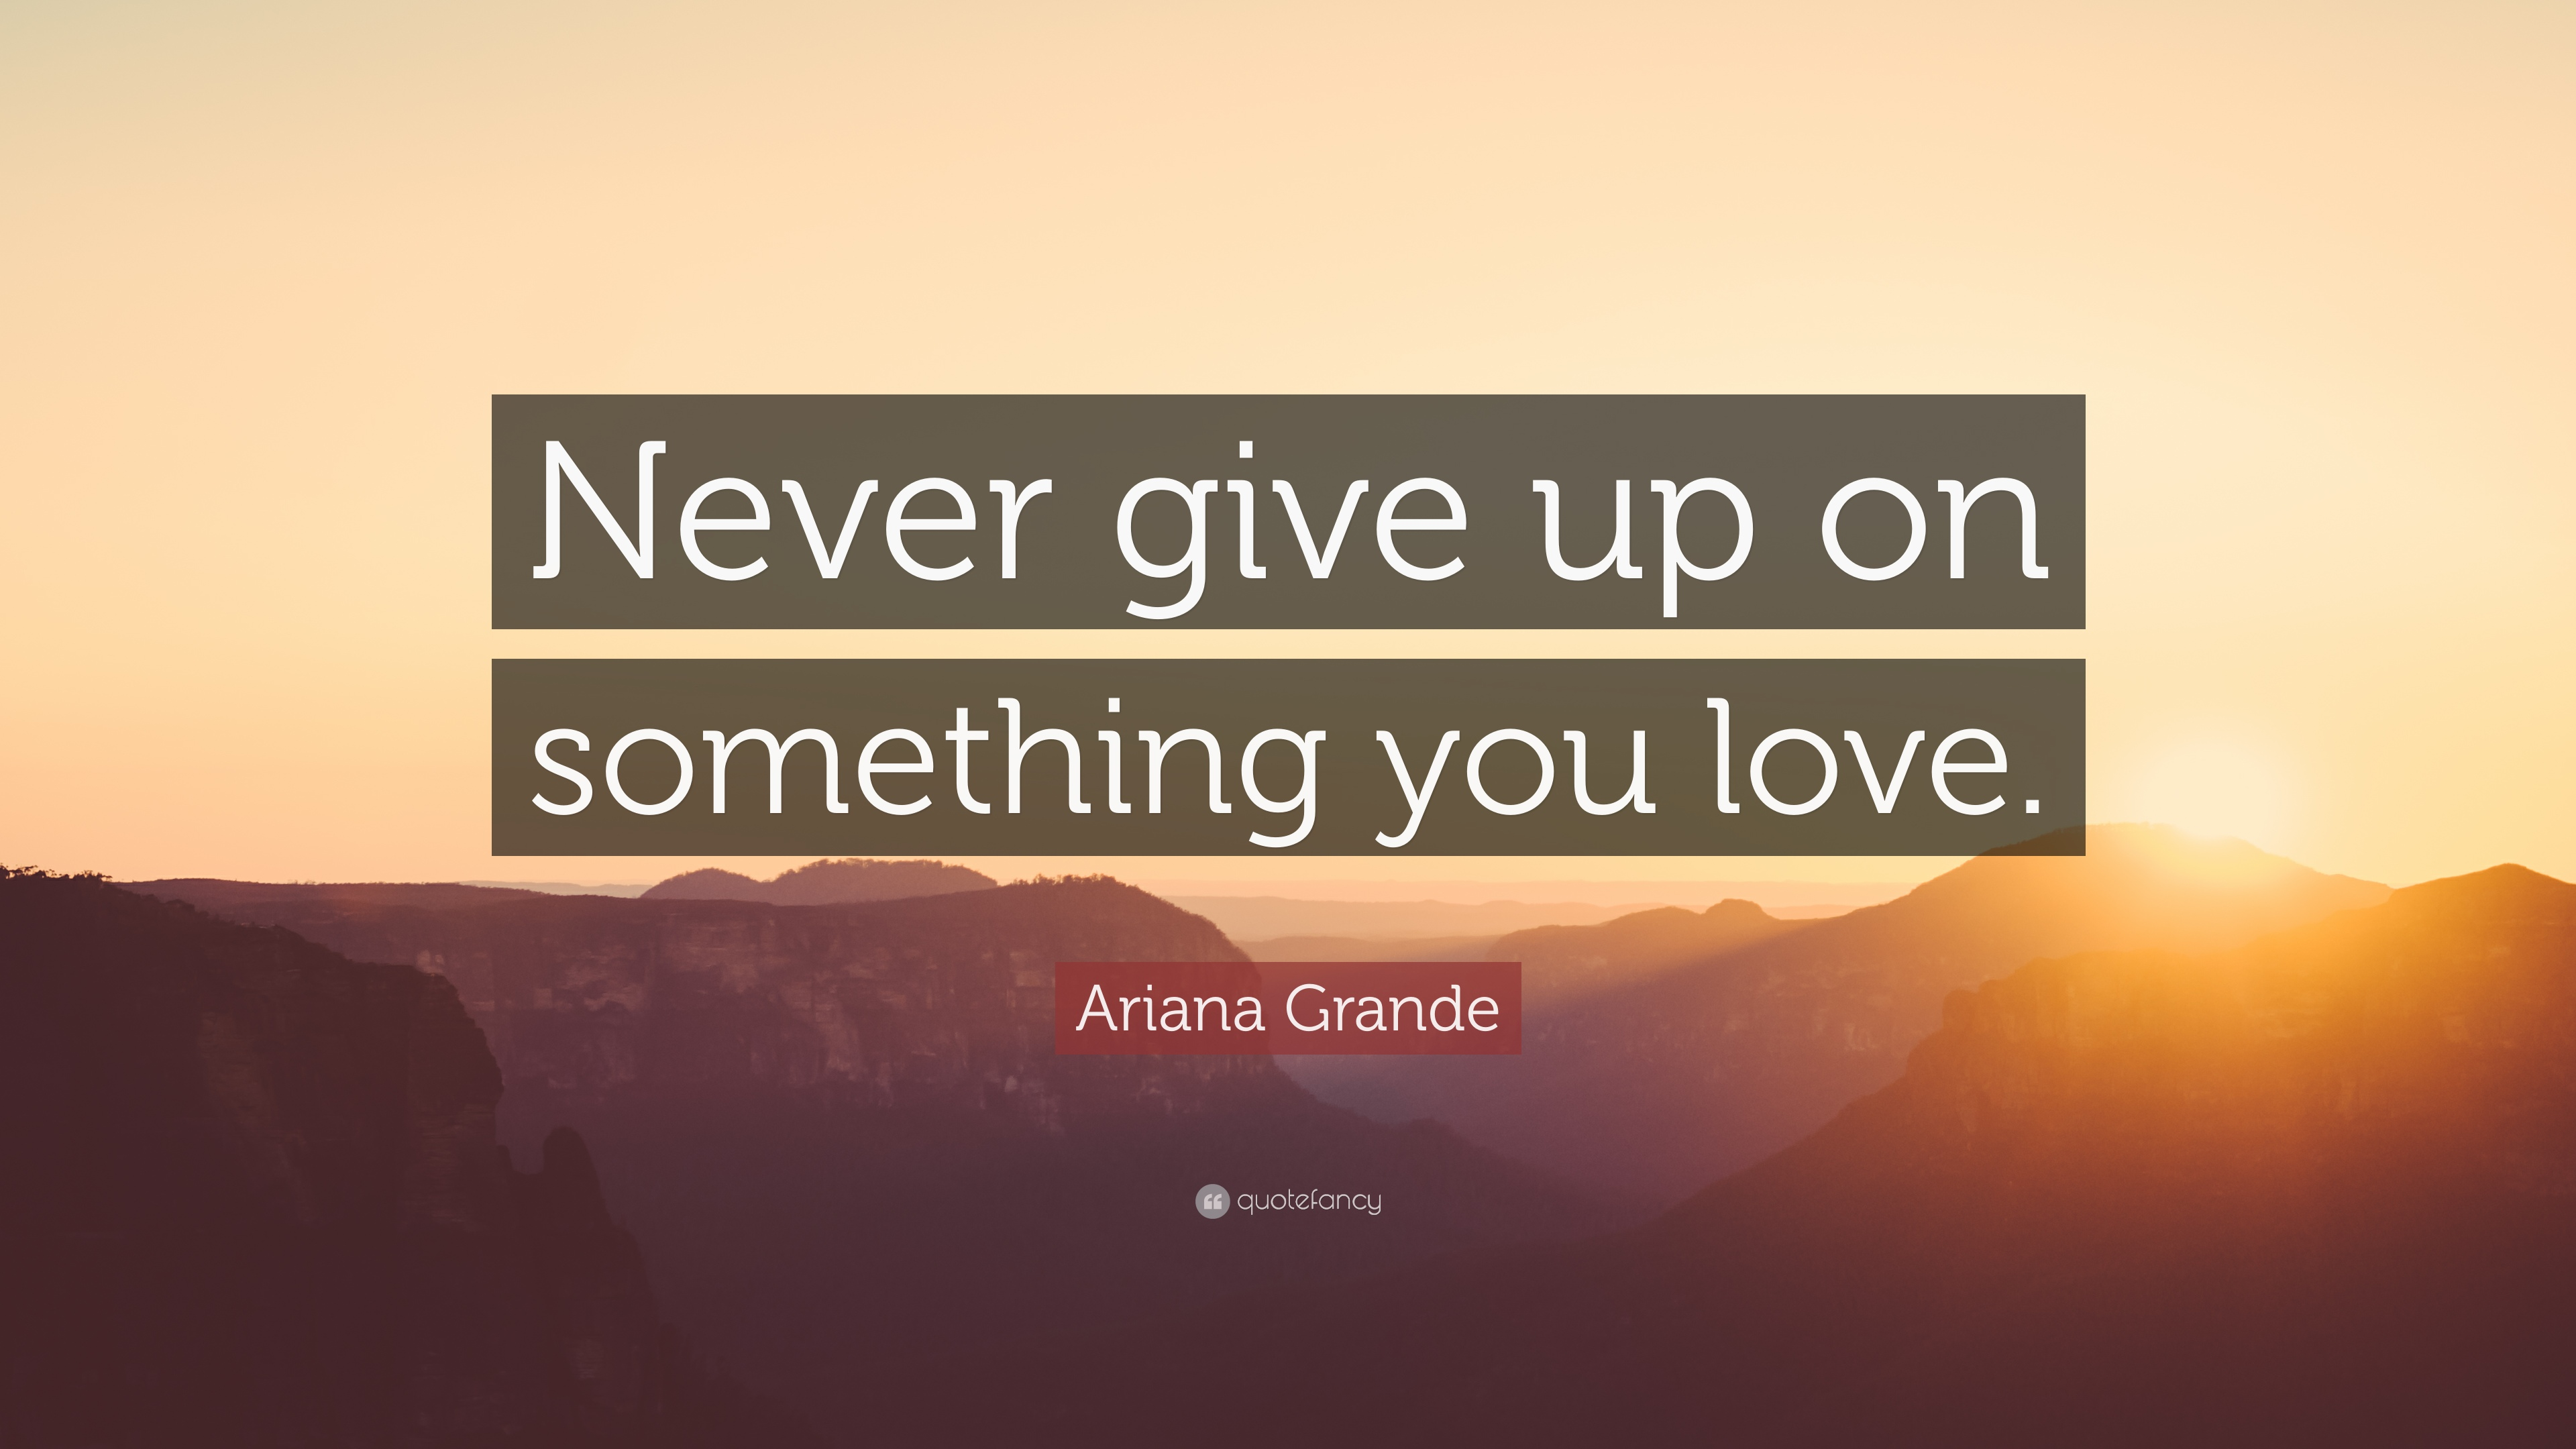 "Ariana Grande Quote ""Never give up on something you love """